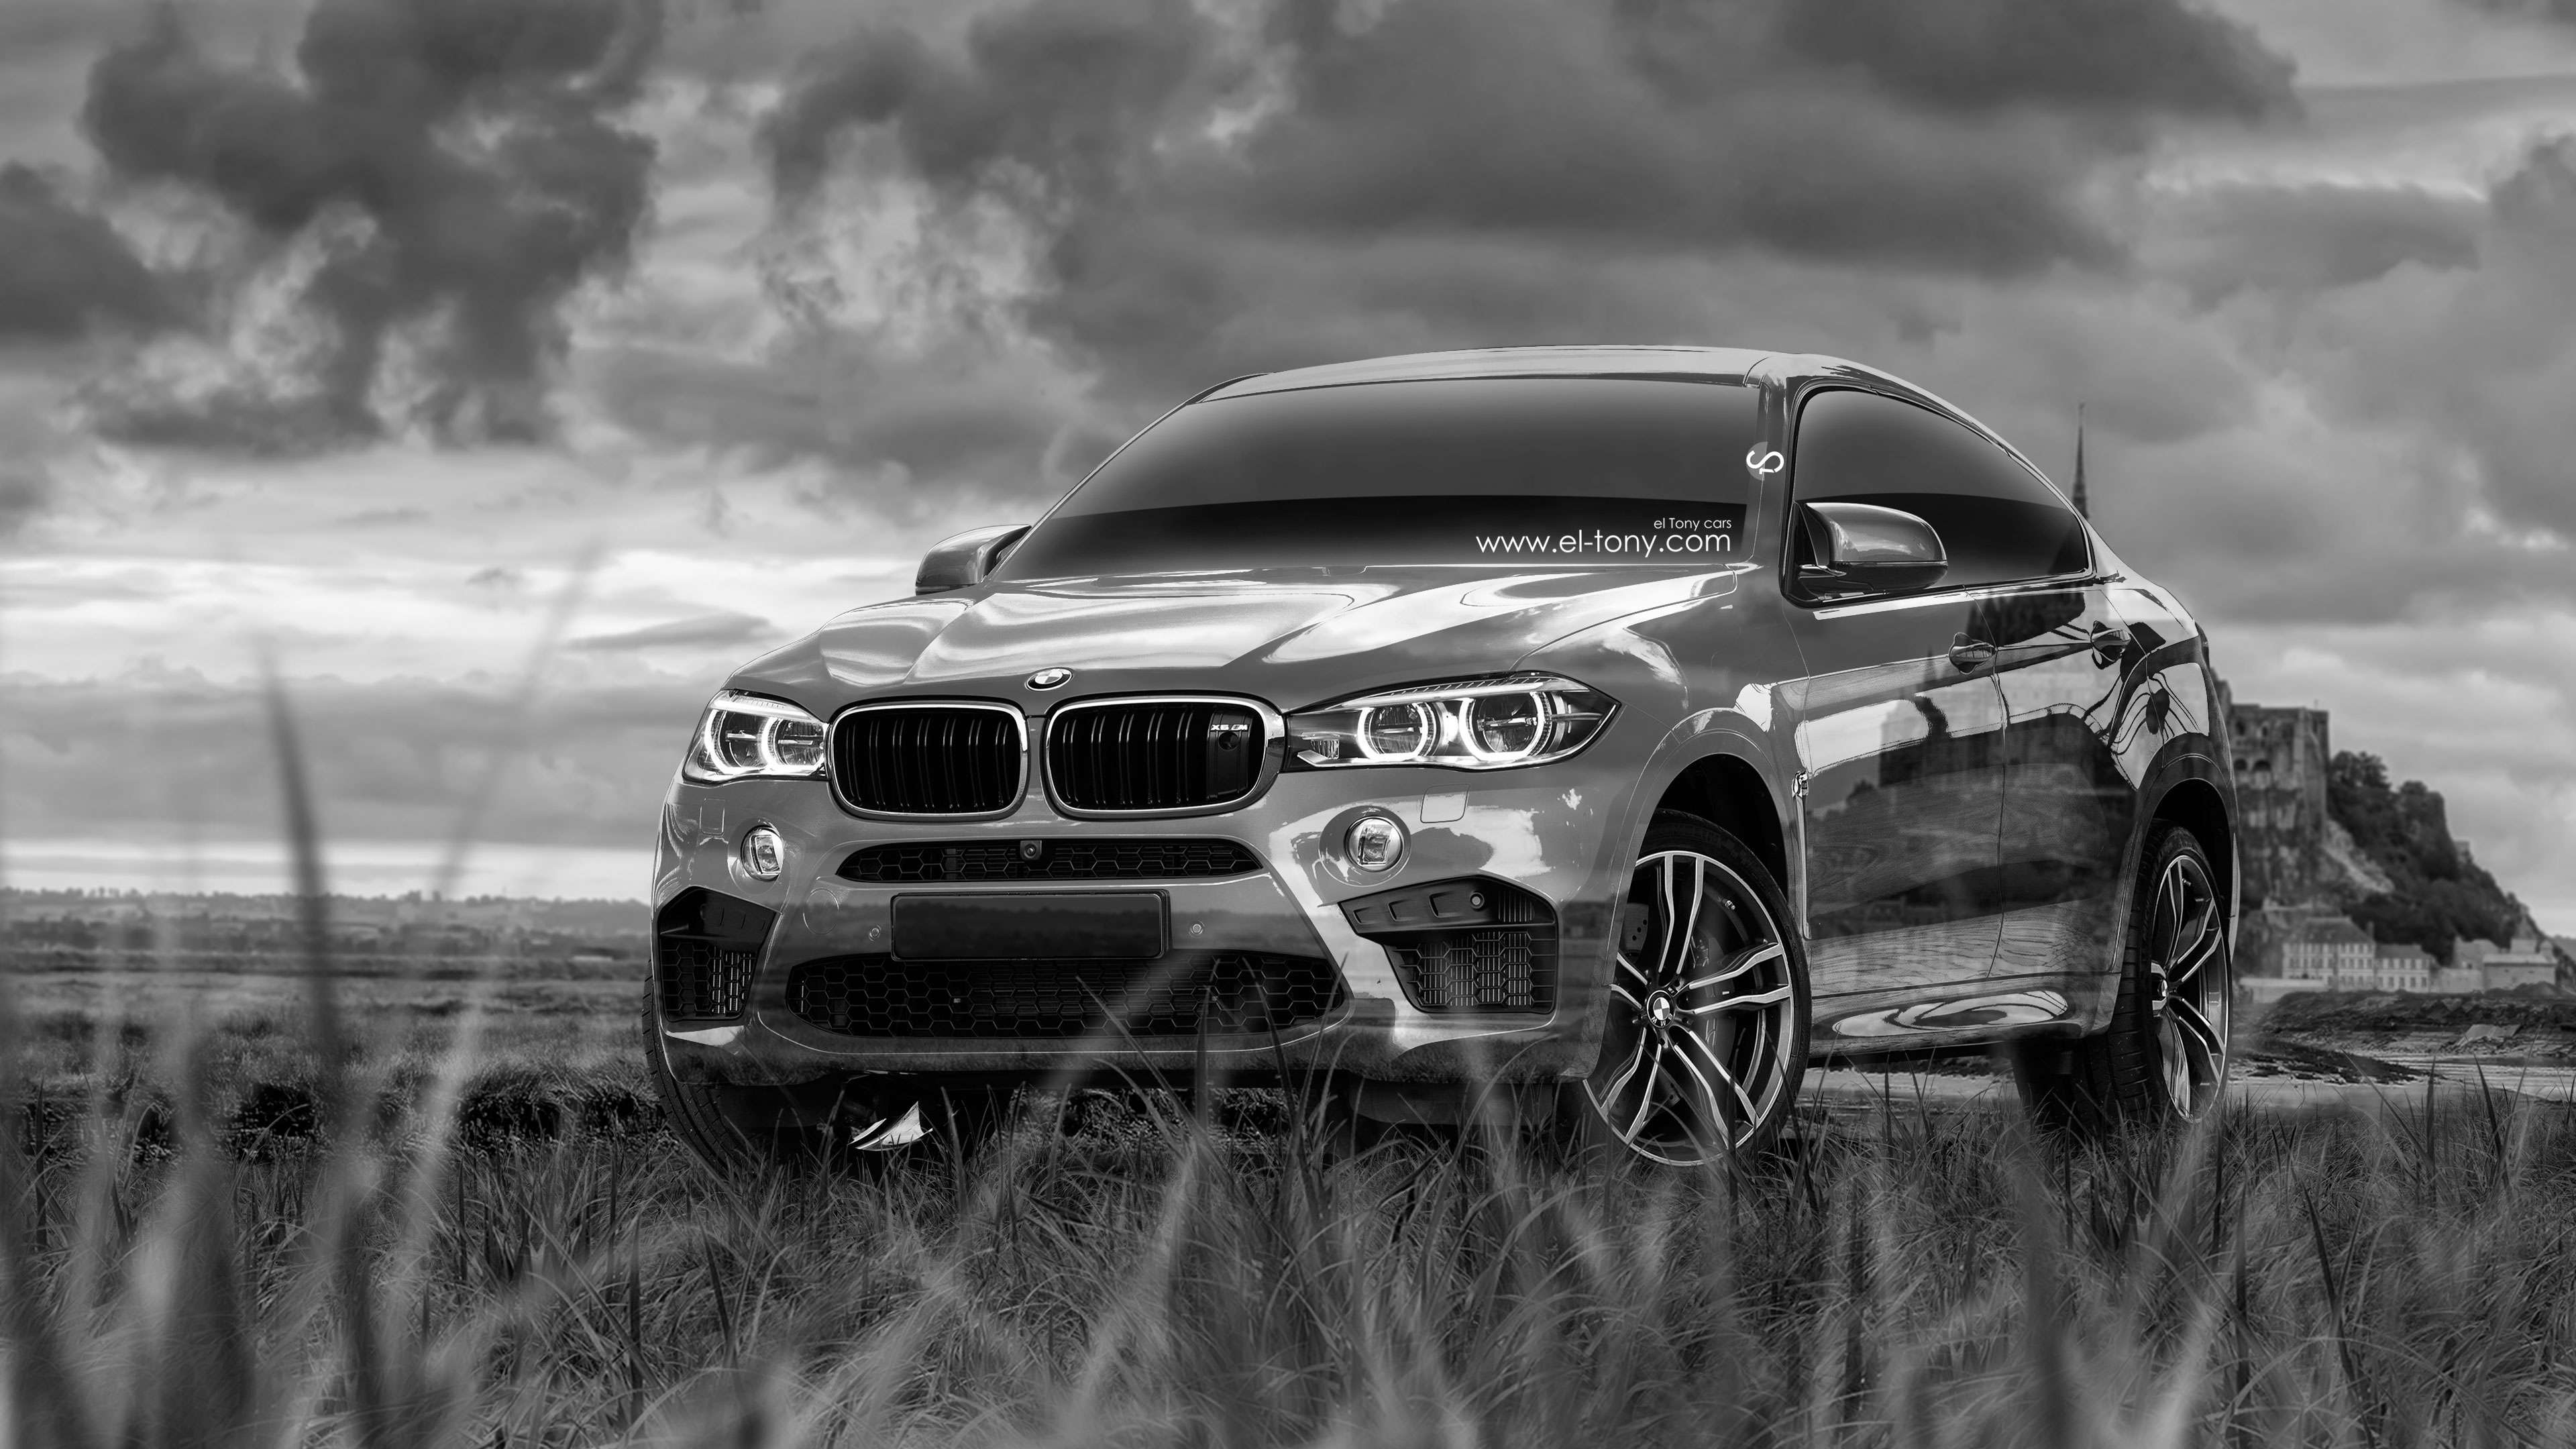 3840x2160 - BMW X6 Wallpapers 32